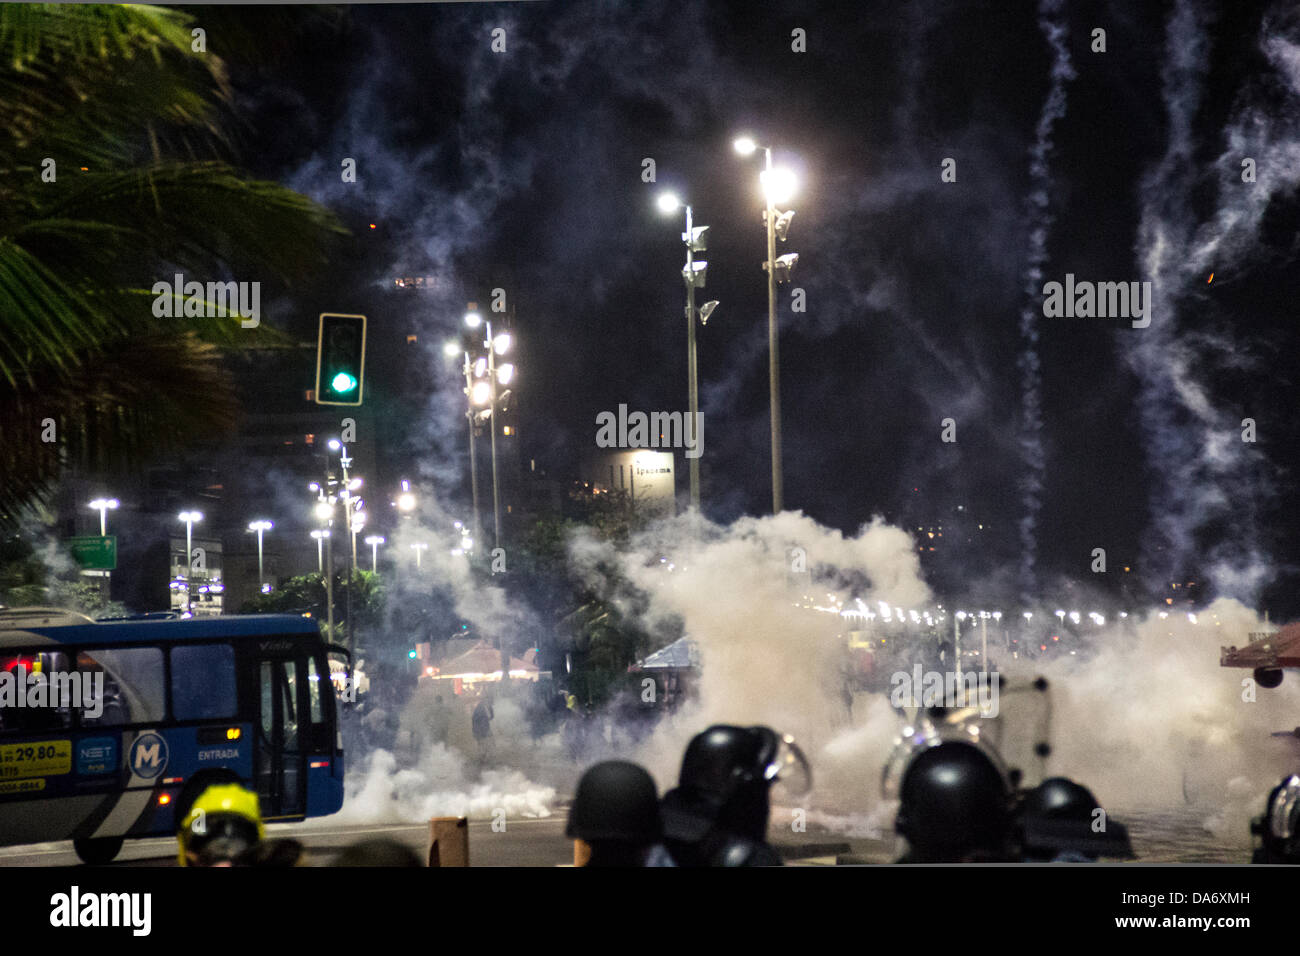 Protest in front of the house of the governor Sergio Cabral ends in conflict between police and protesters. The - Stock Image